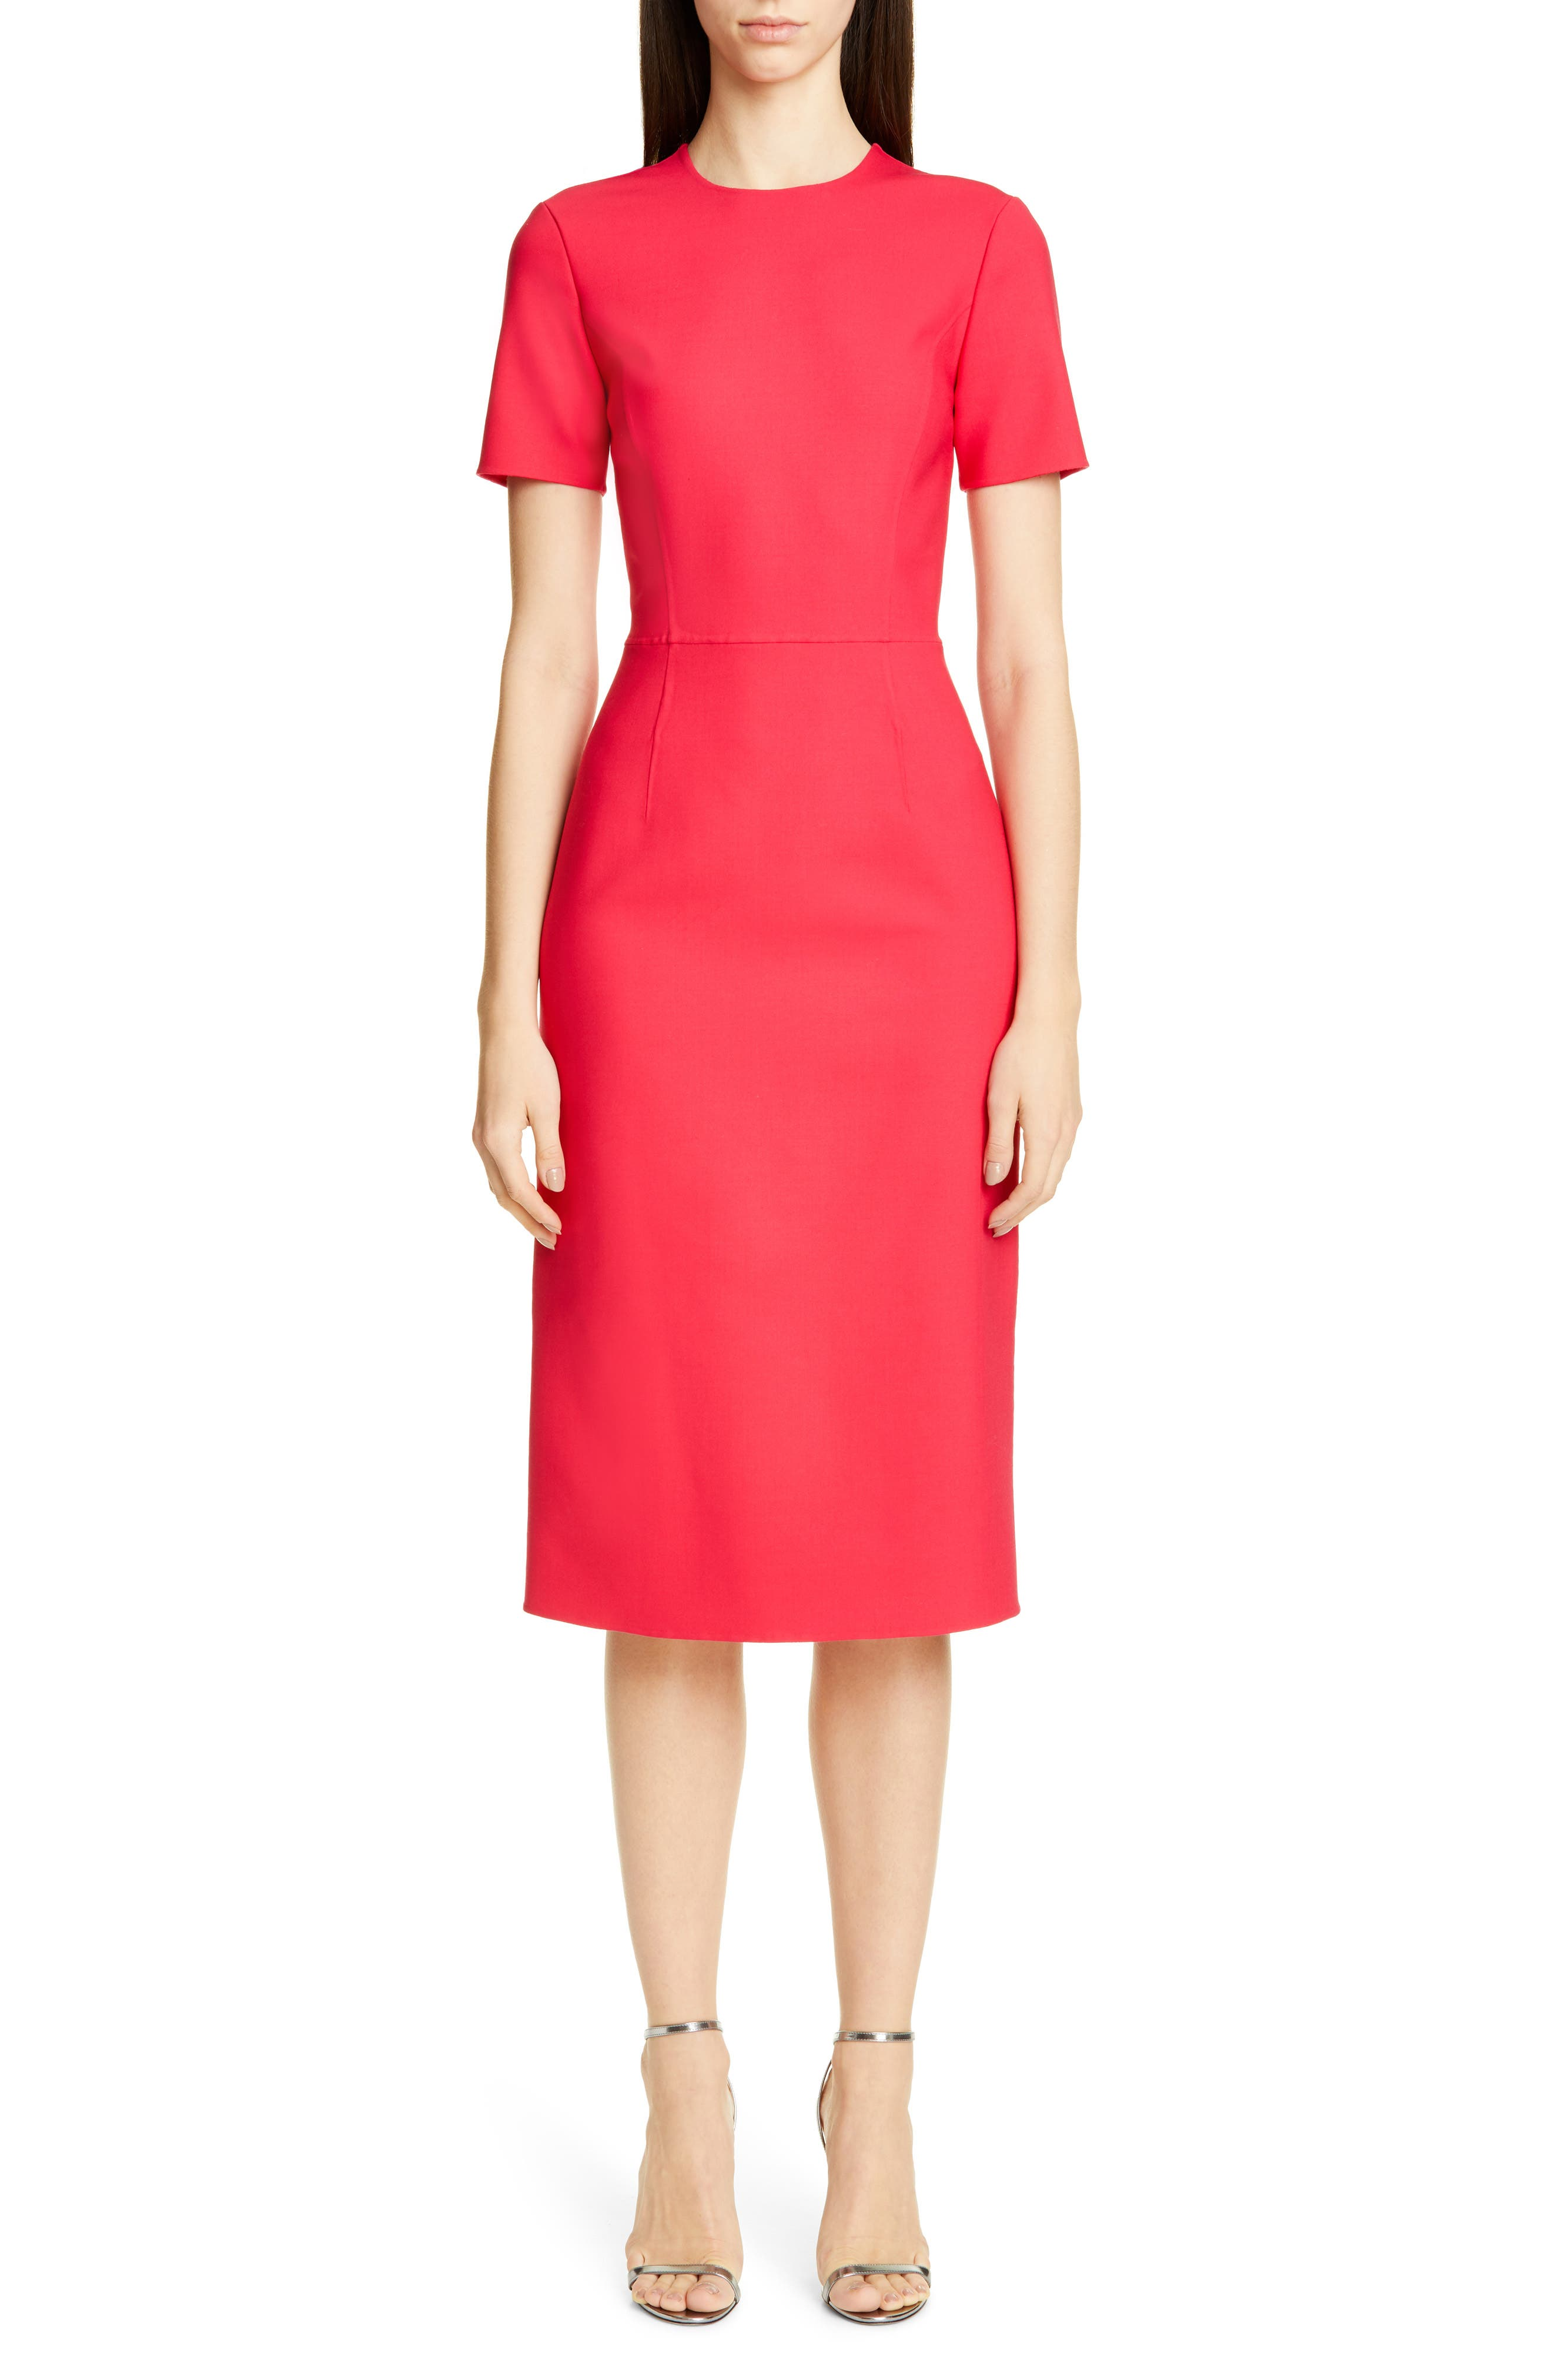 Carolina Herrera Double Face Sheath Dress, Red